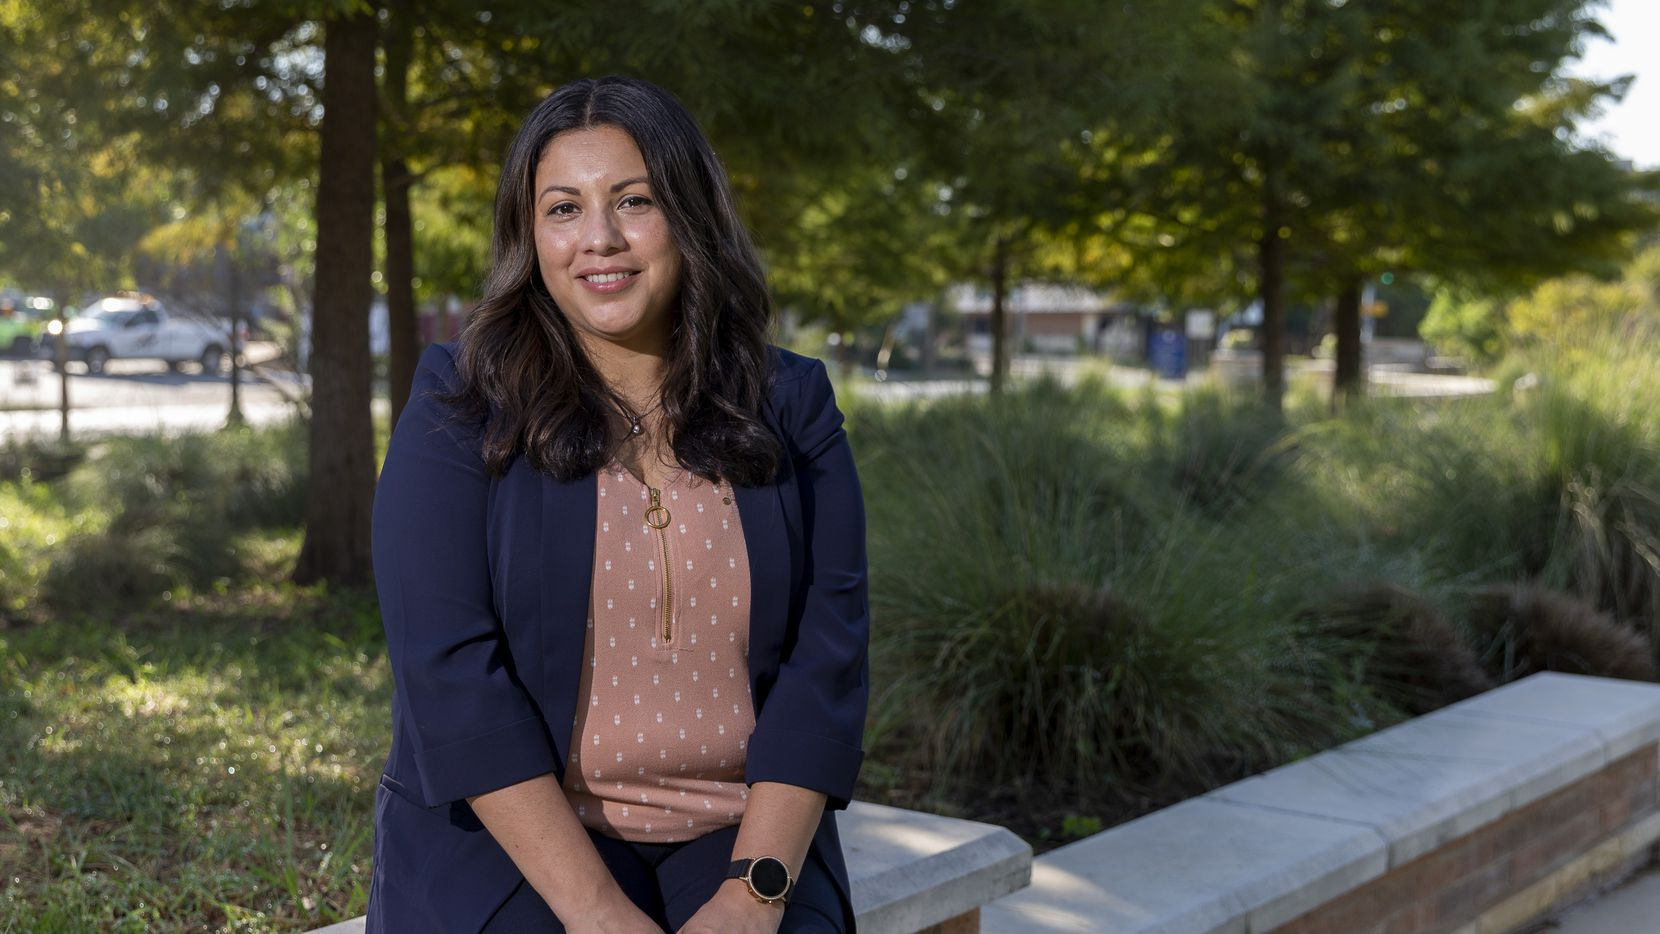 Denise Hernandez pictured at The Green at College Park on Thursday, Oct. 7, 2021, in Arlington.